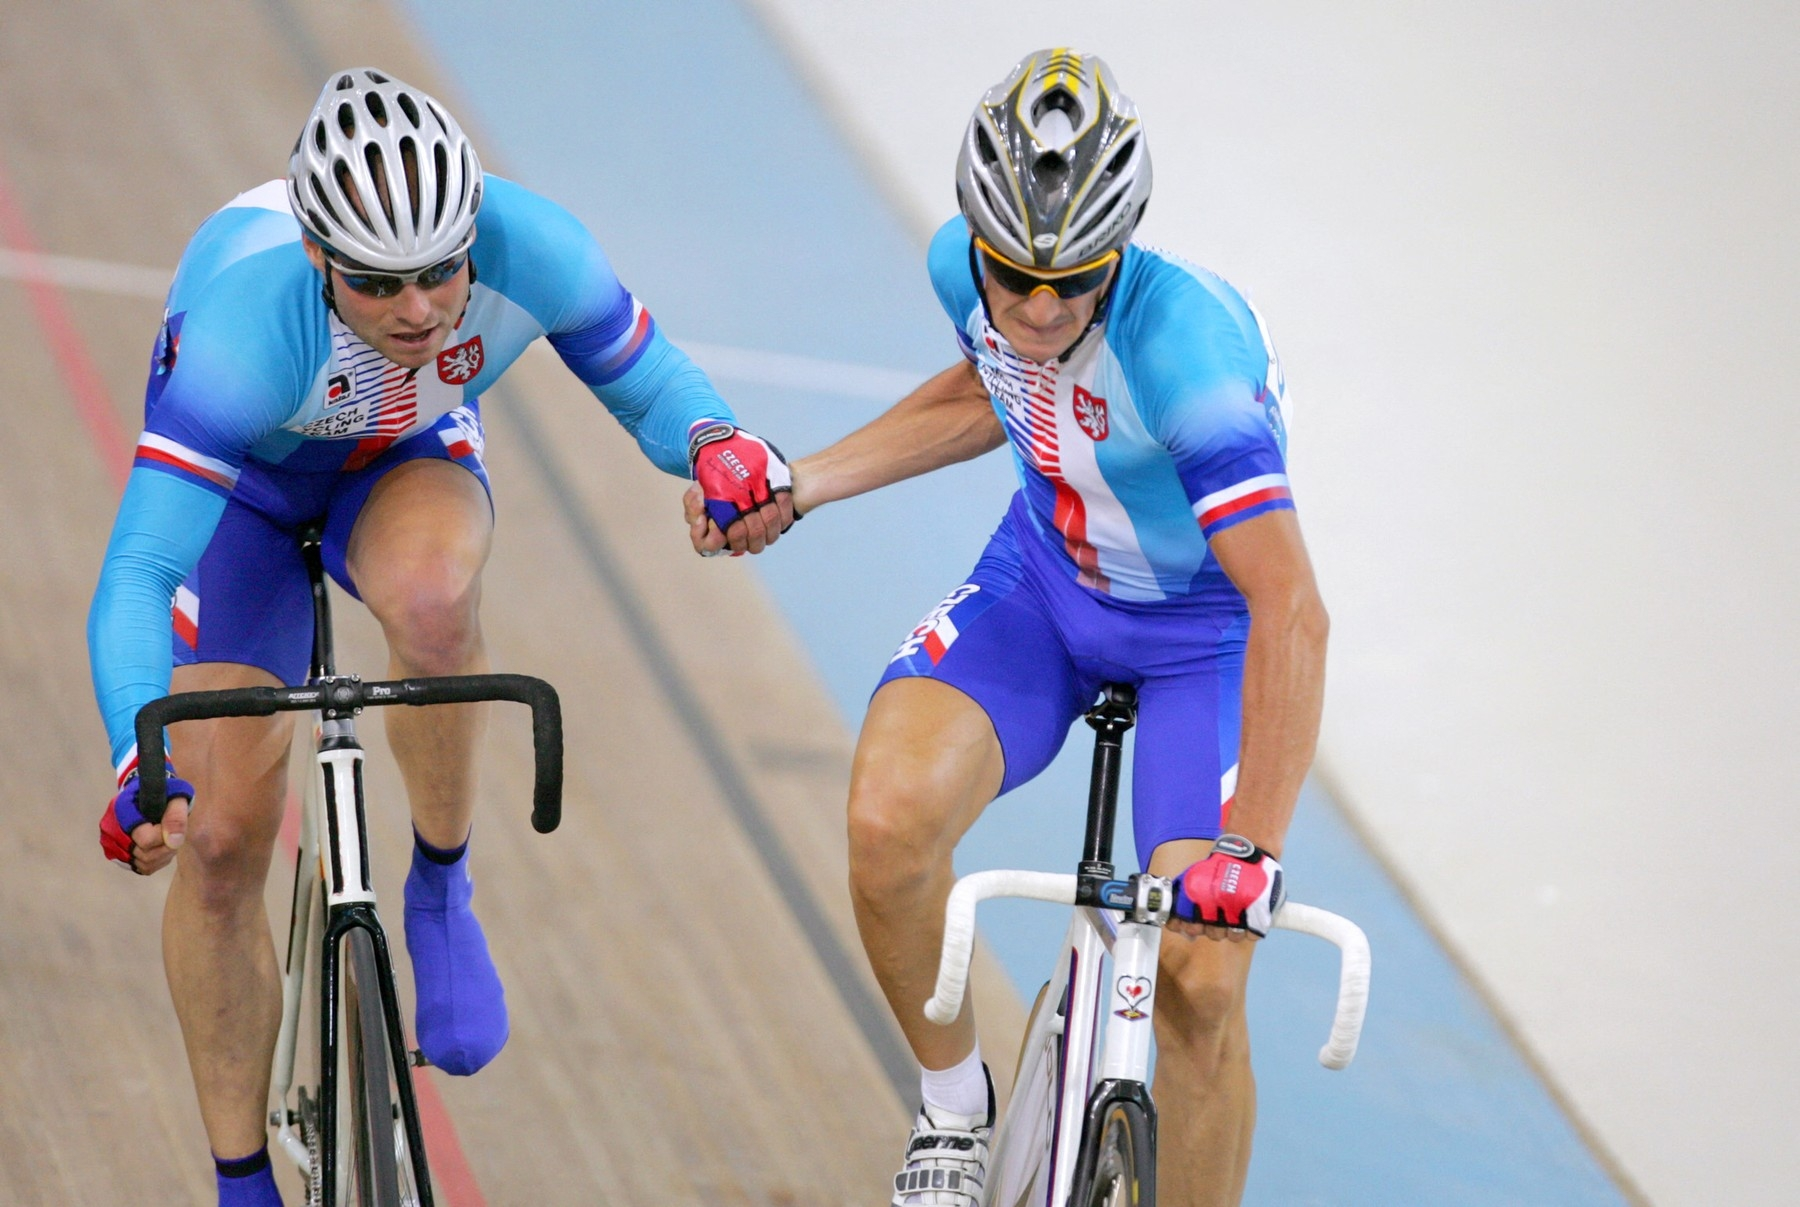 Milan Kadlec (R) of the Czech Republic gets set to propell partner Petr Lazar (L) during the men's madison final in the Olympic Velodrome at the Olympic Games in Athens, 25 August 2004.